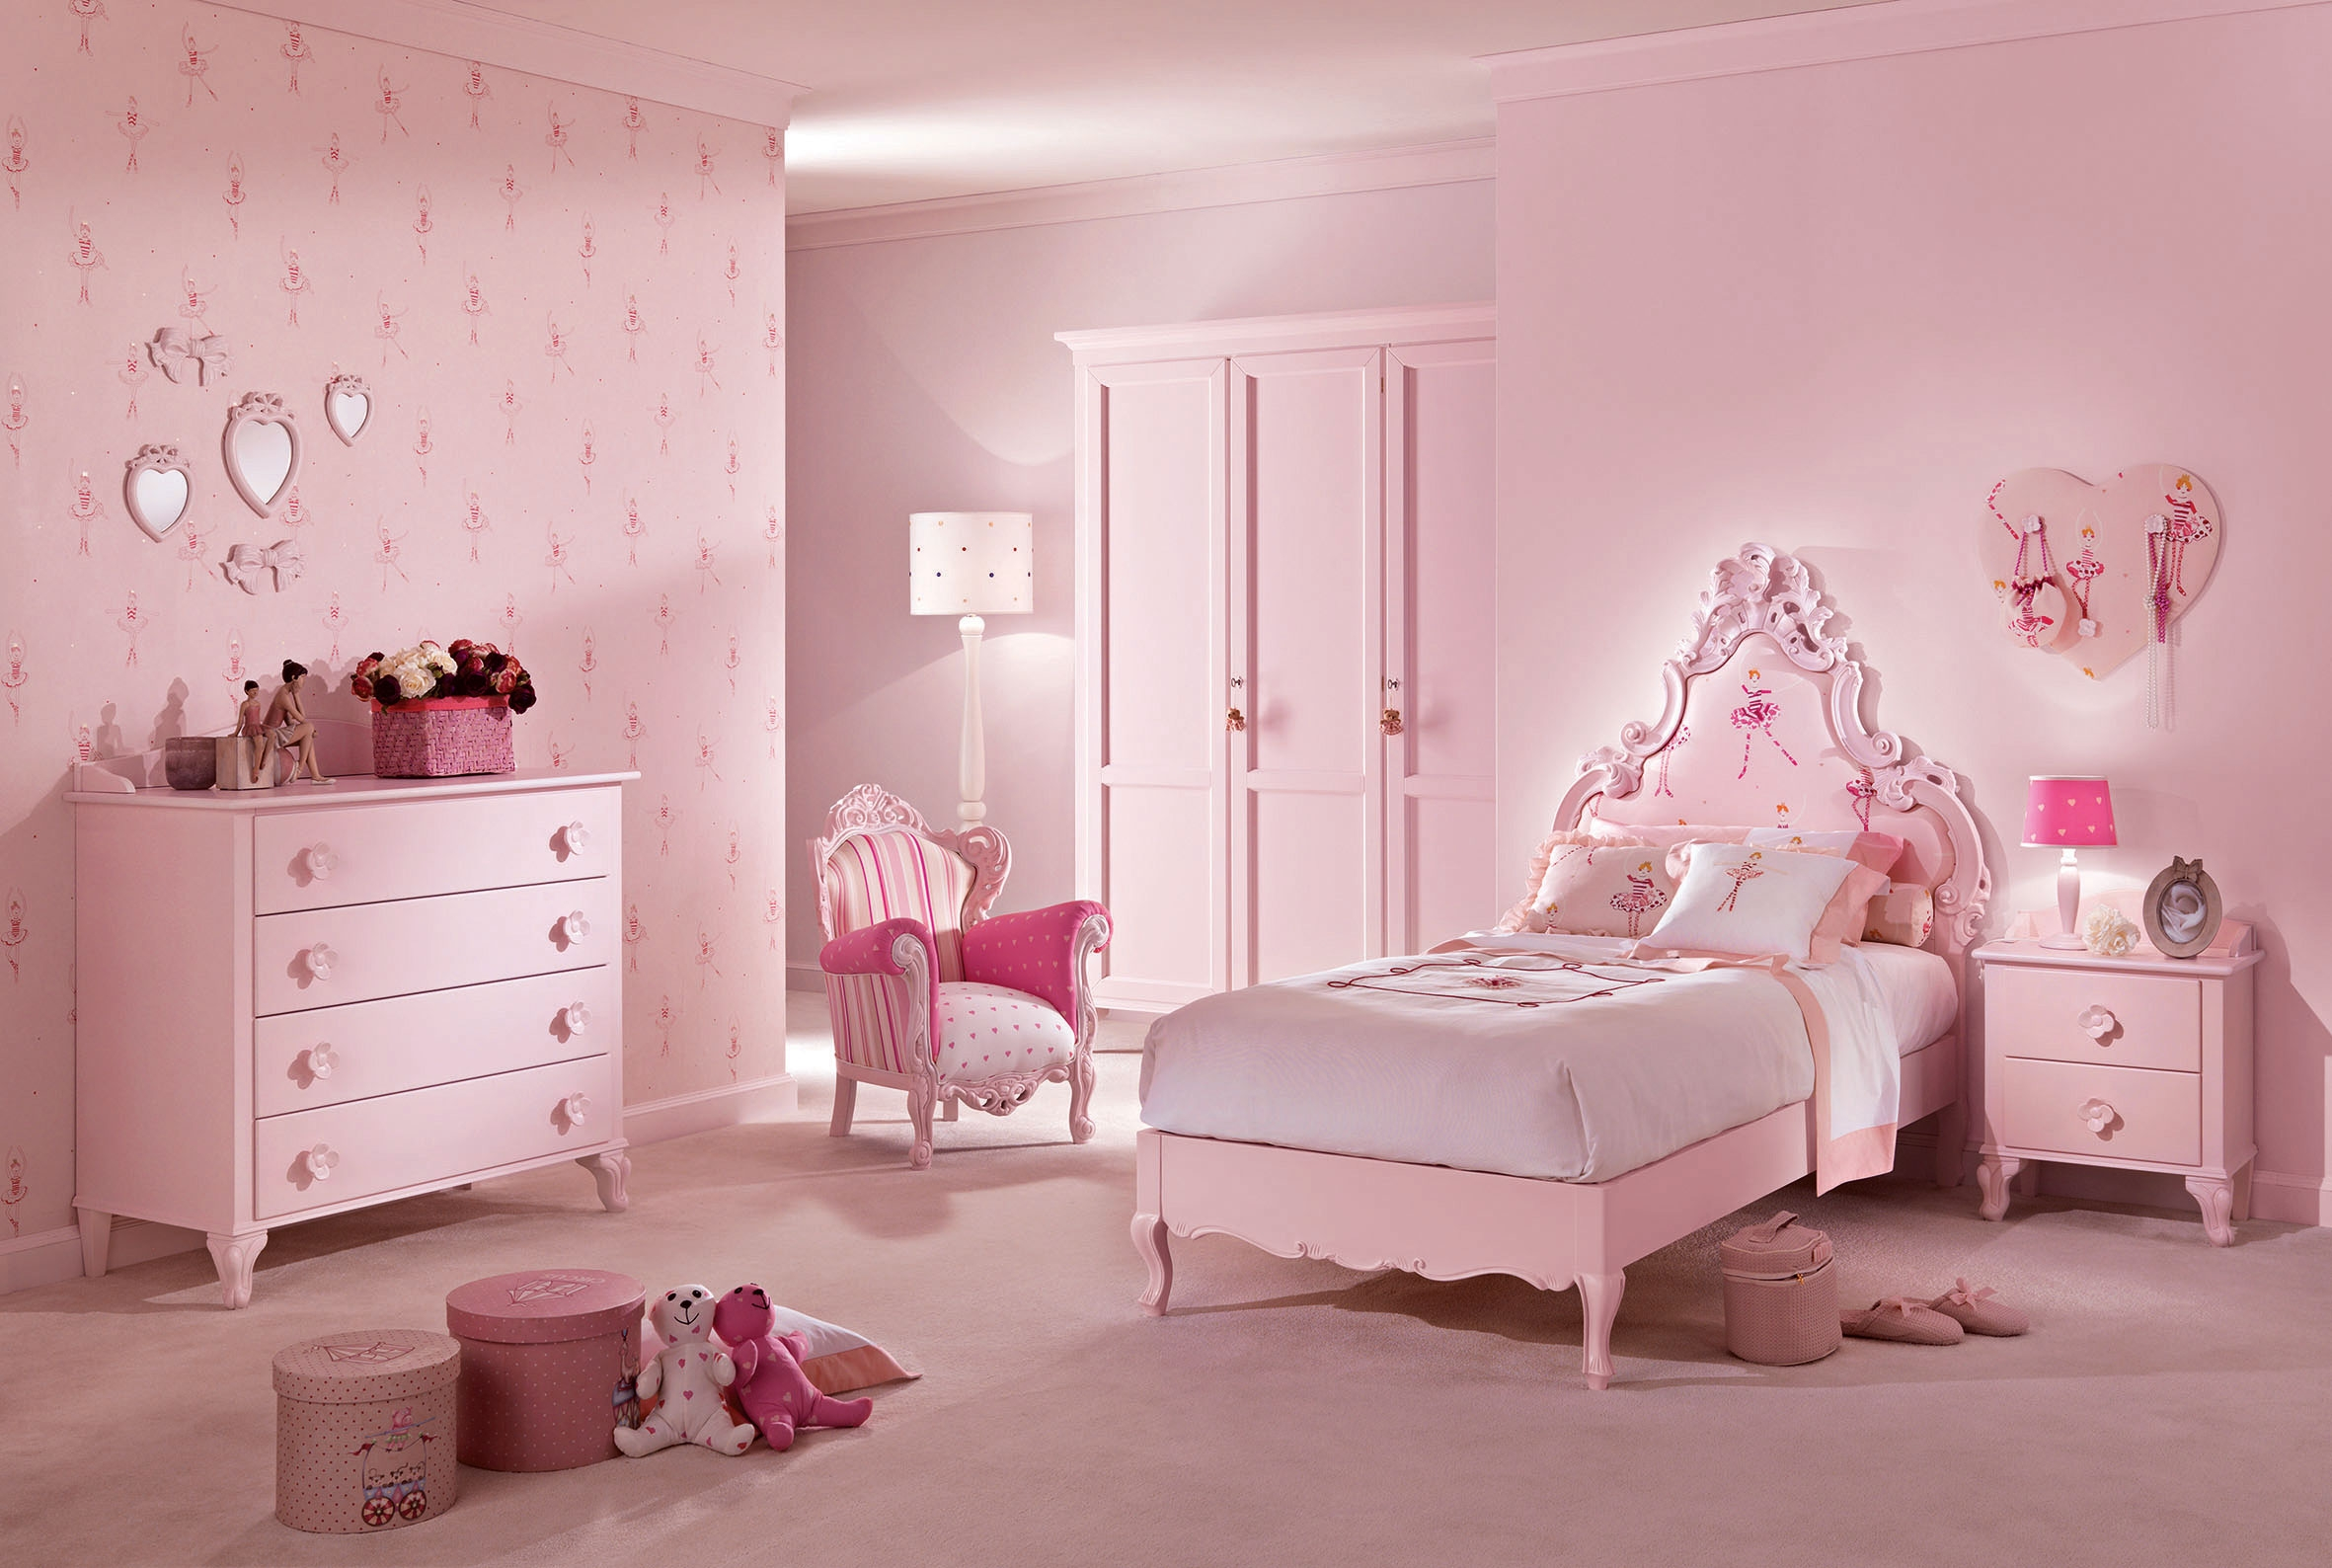 Lit princesse mod le c cile rose pastel piermaria so nuit for Lit princesse adulte